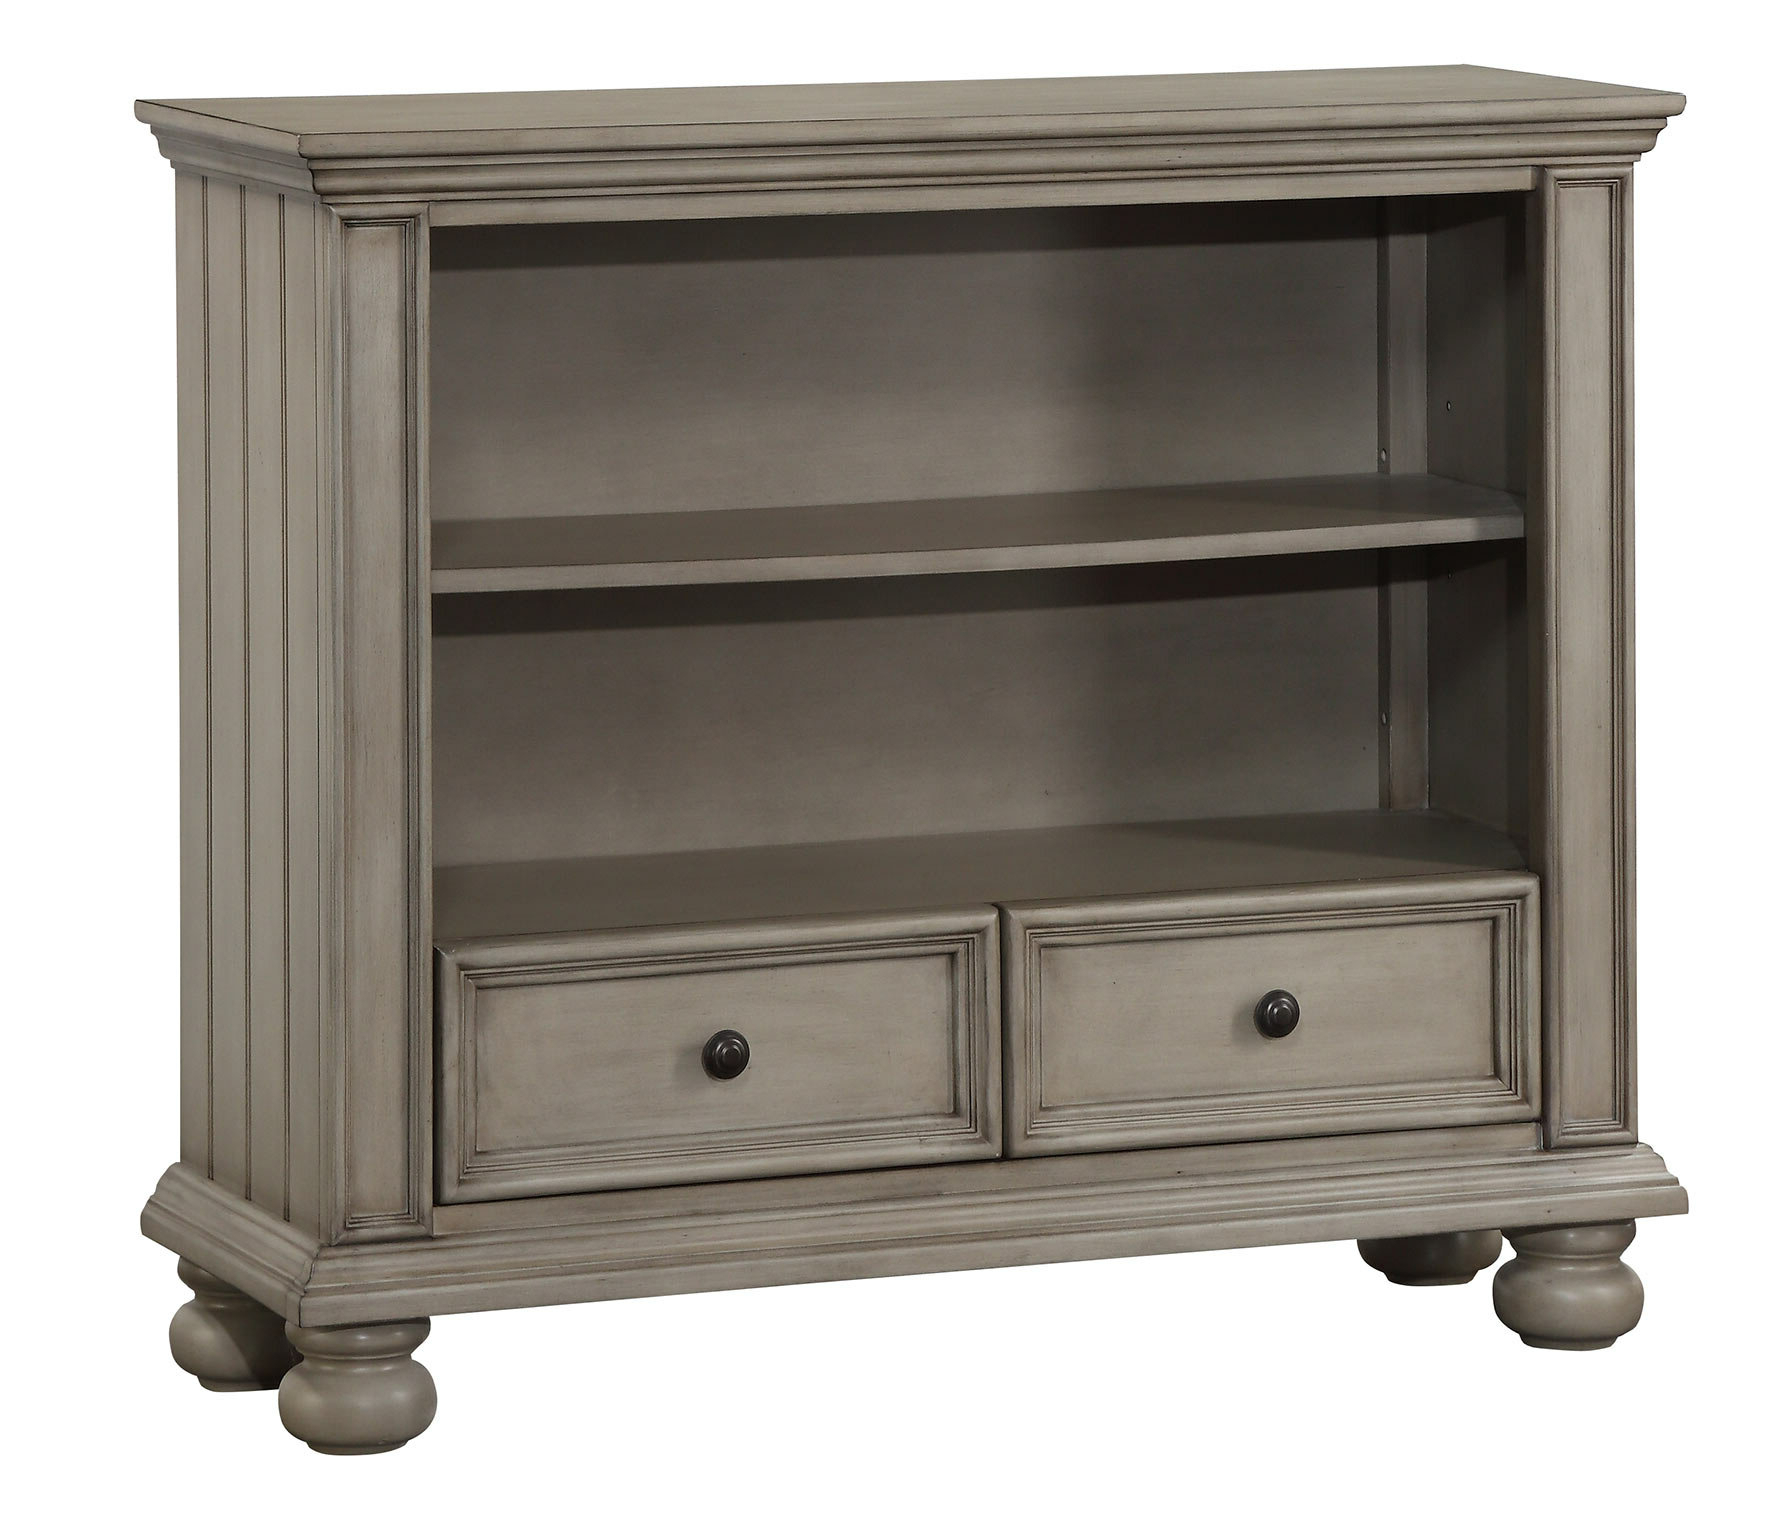 Most Recent Keithley Standard Bookcases In Oma Standard Bookcase (View 17 of 20)